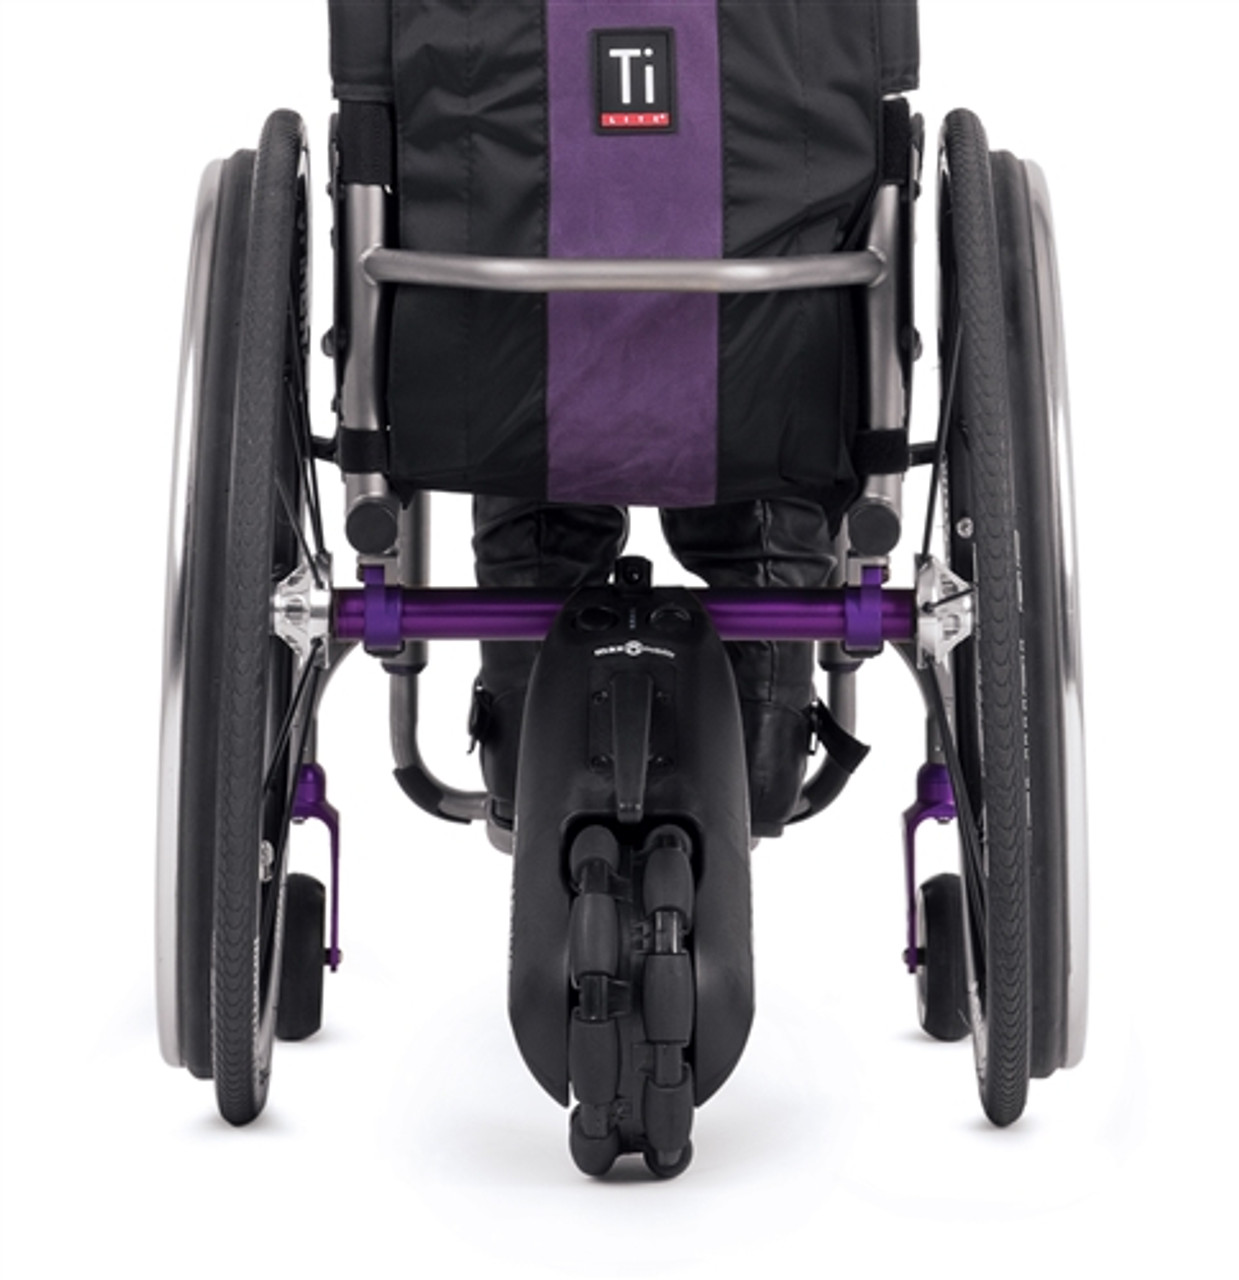 The SmartDrive MX2 mounted behind a wheelchair.